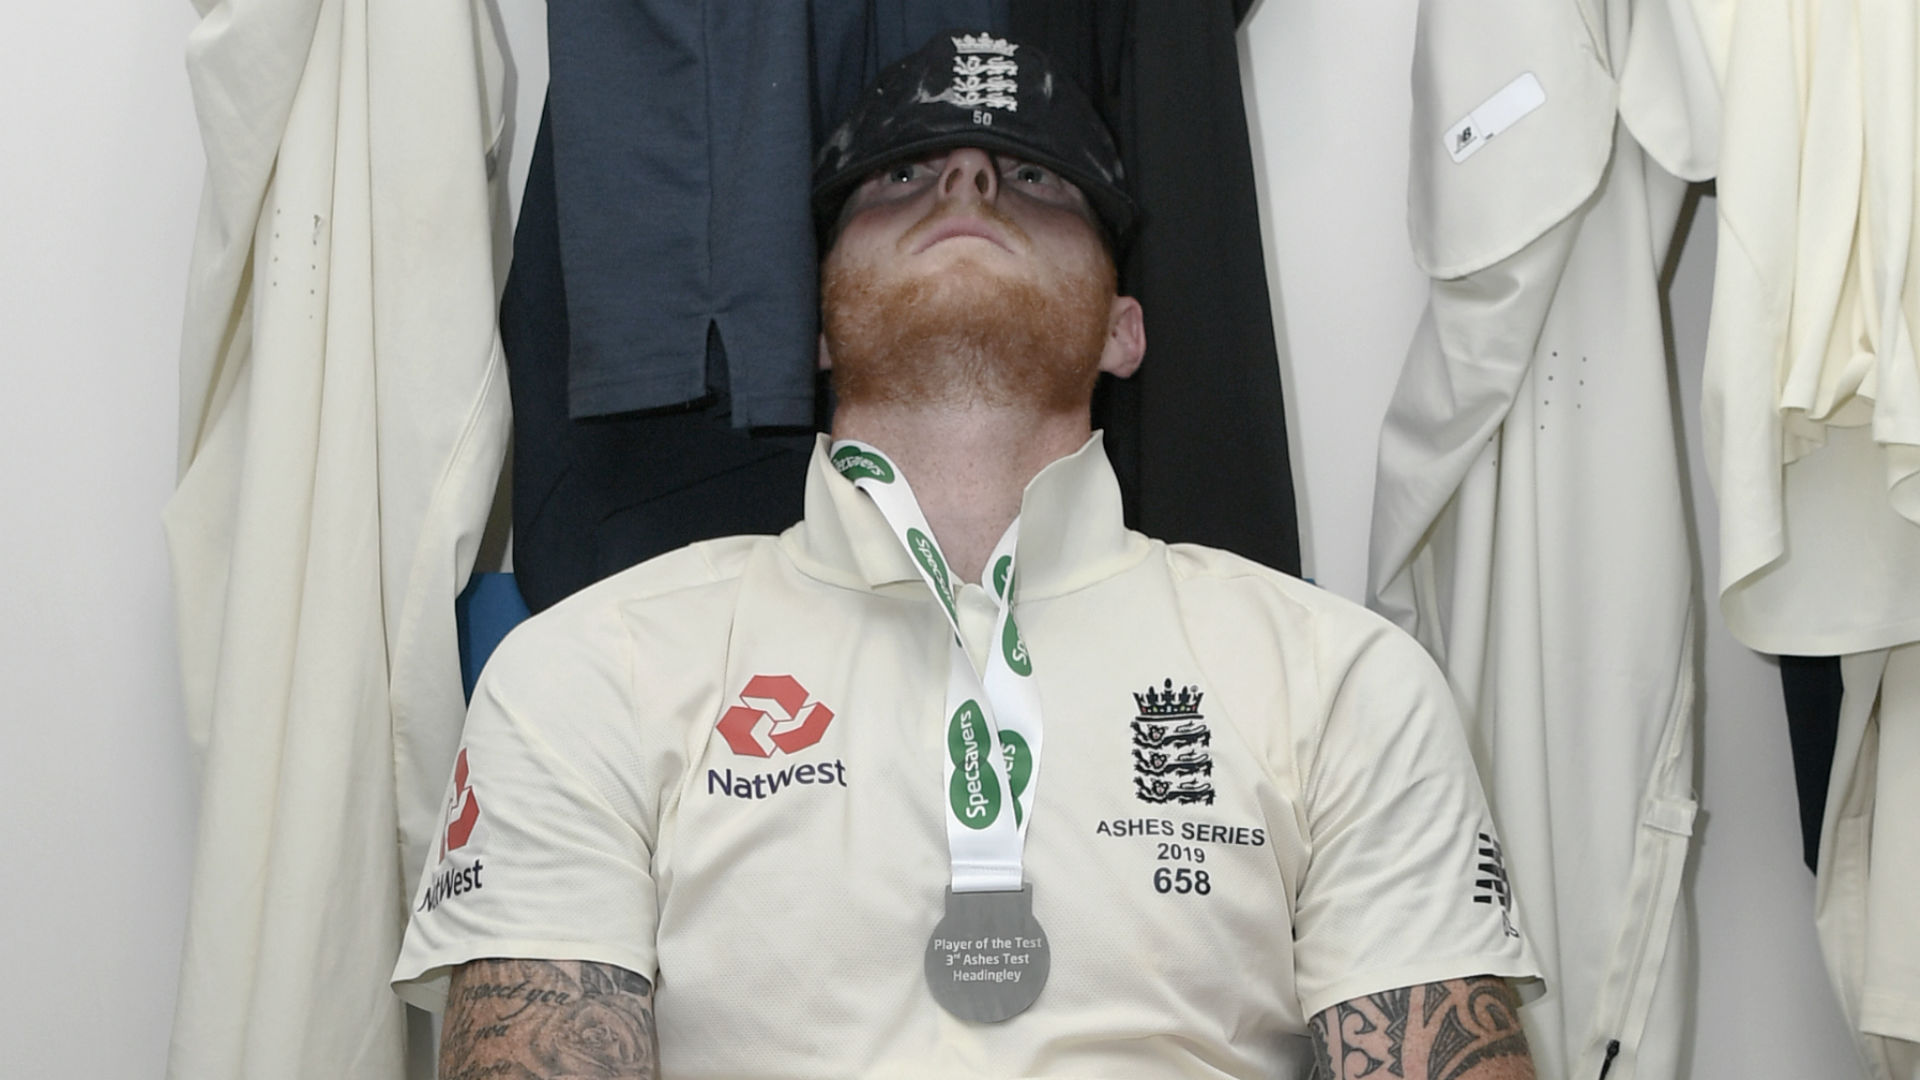 At a time when the longest format remains under threat, Ben Stokes served a timely reminder of Test cricket's enduring quality.